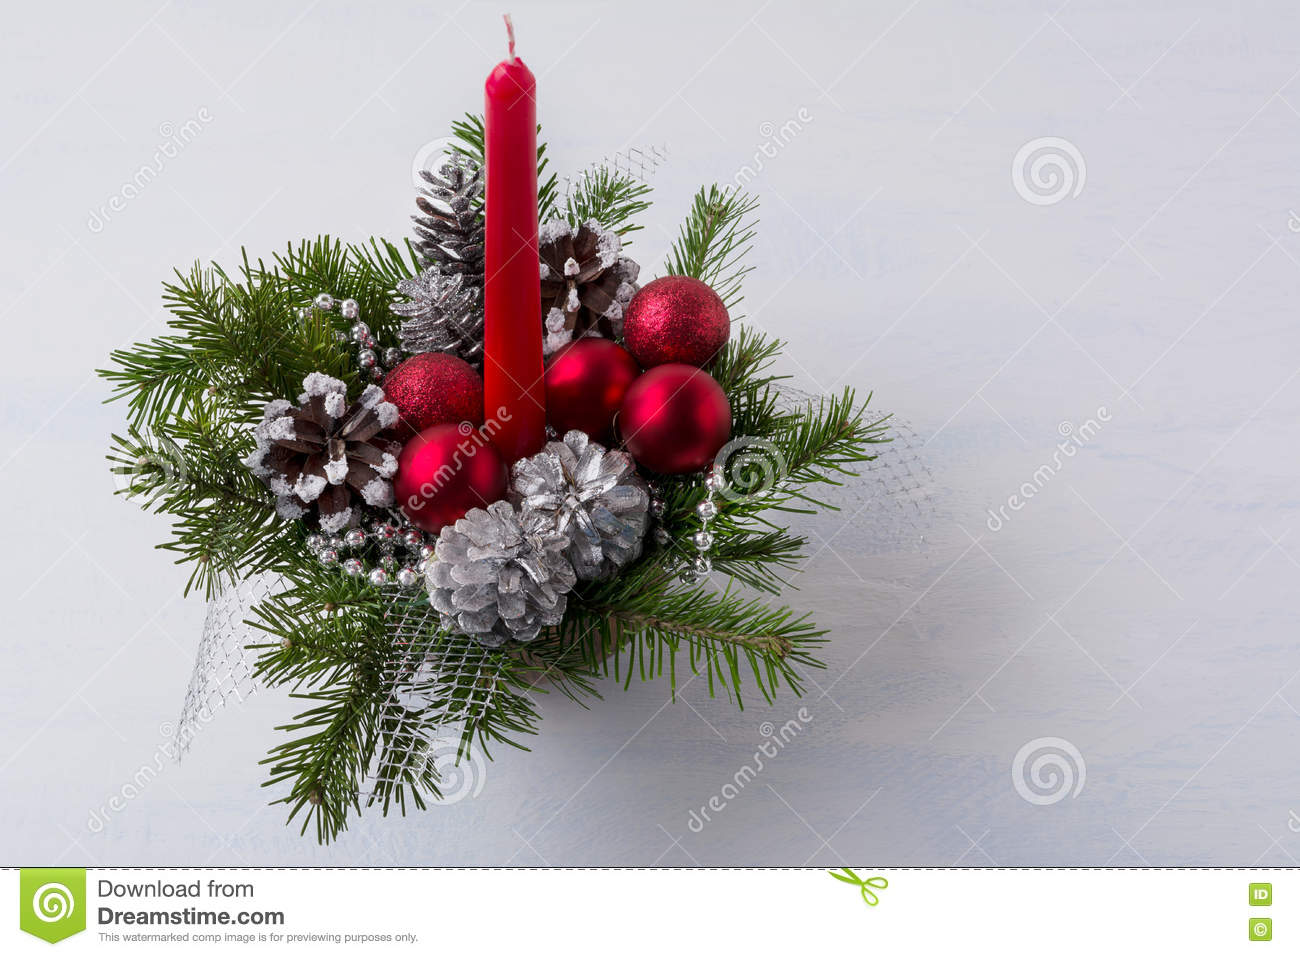 c9f2ec77ae32 Christmas Table Centerpiece With Red Candle And Silver Pine Cone ...